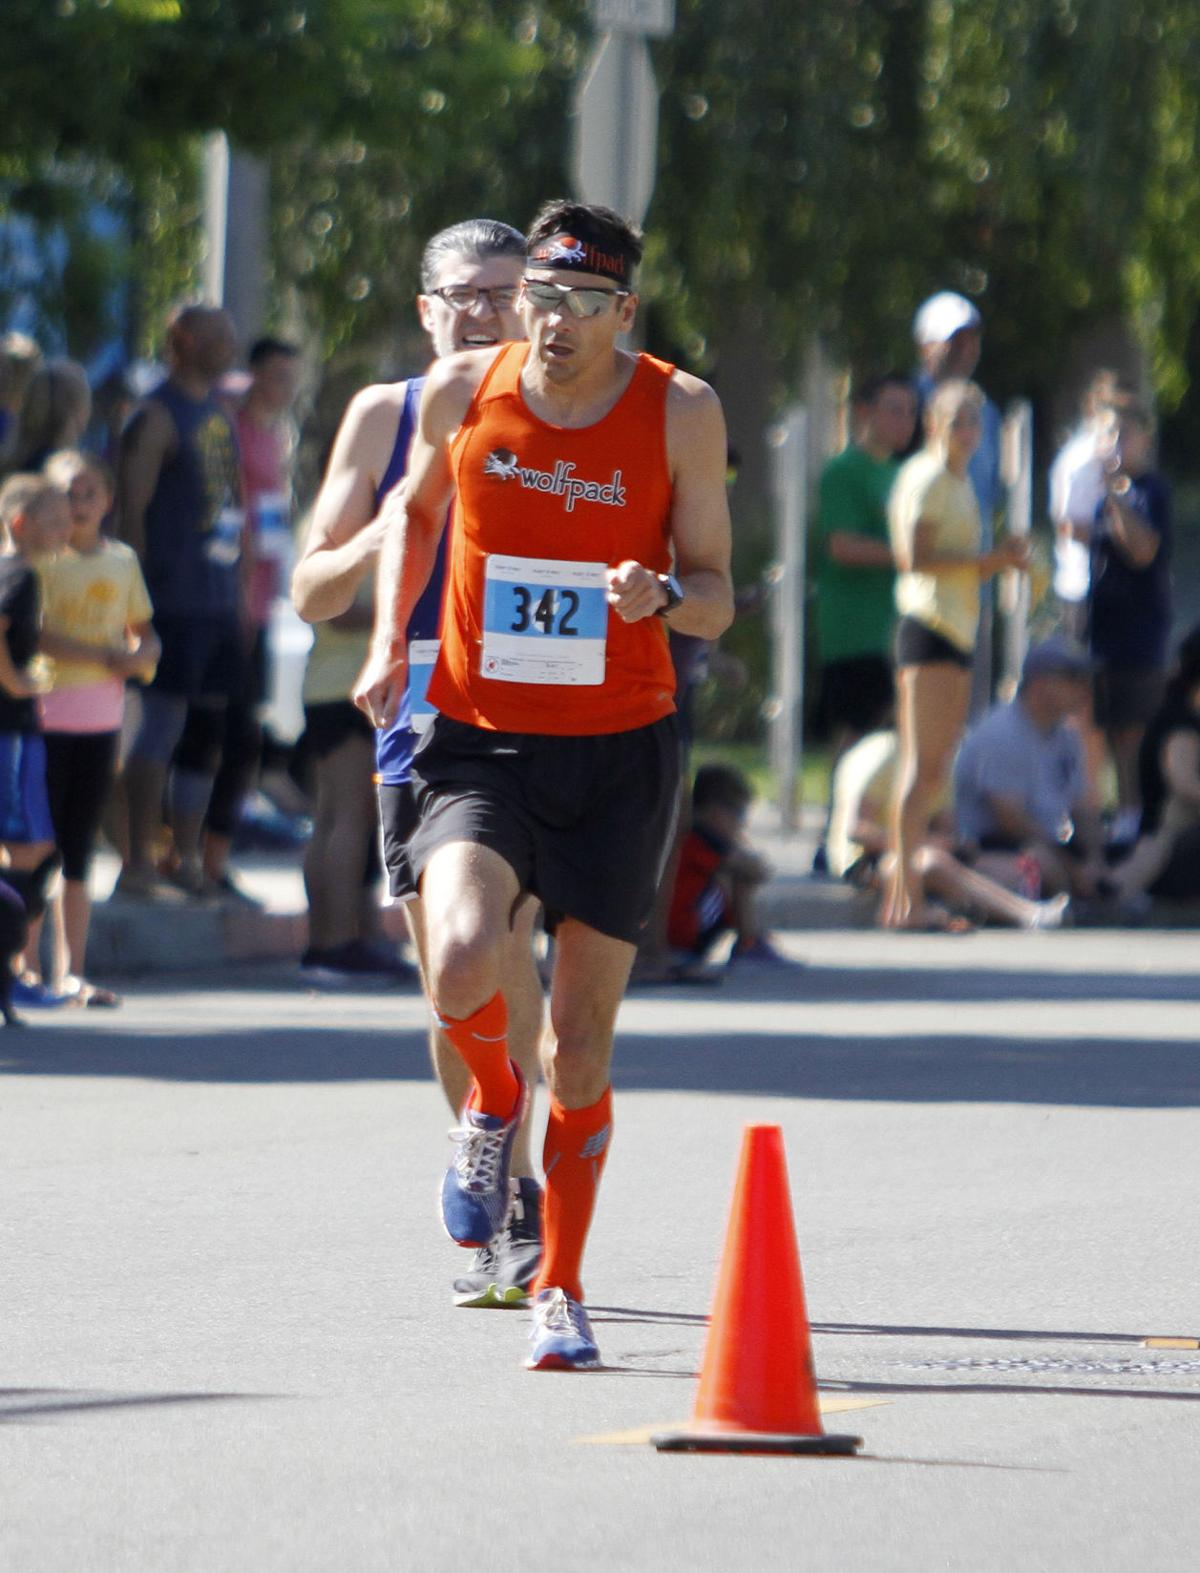 Road running: Milers put on a show